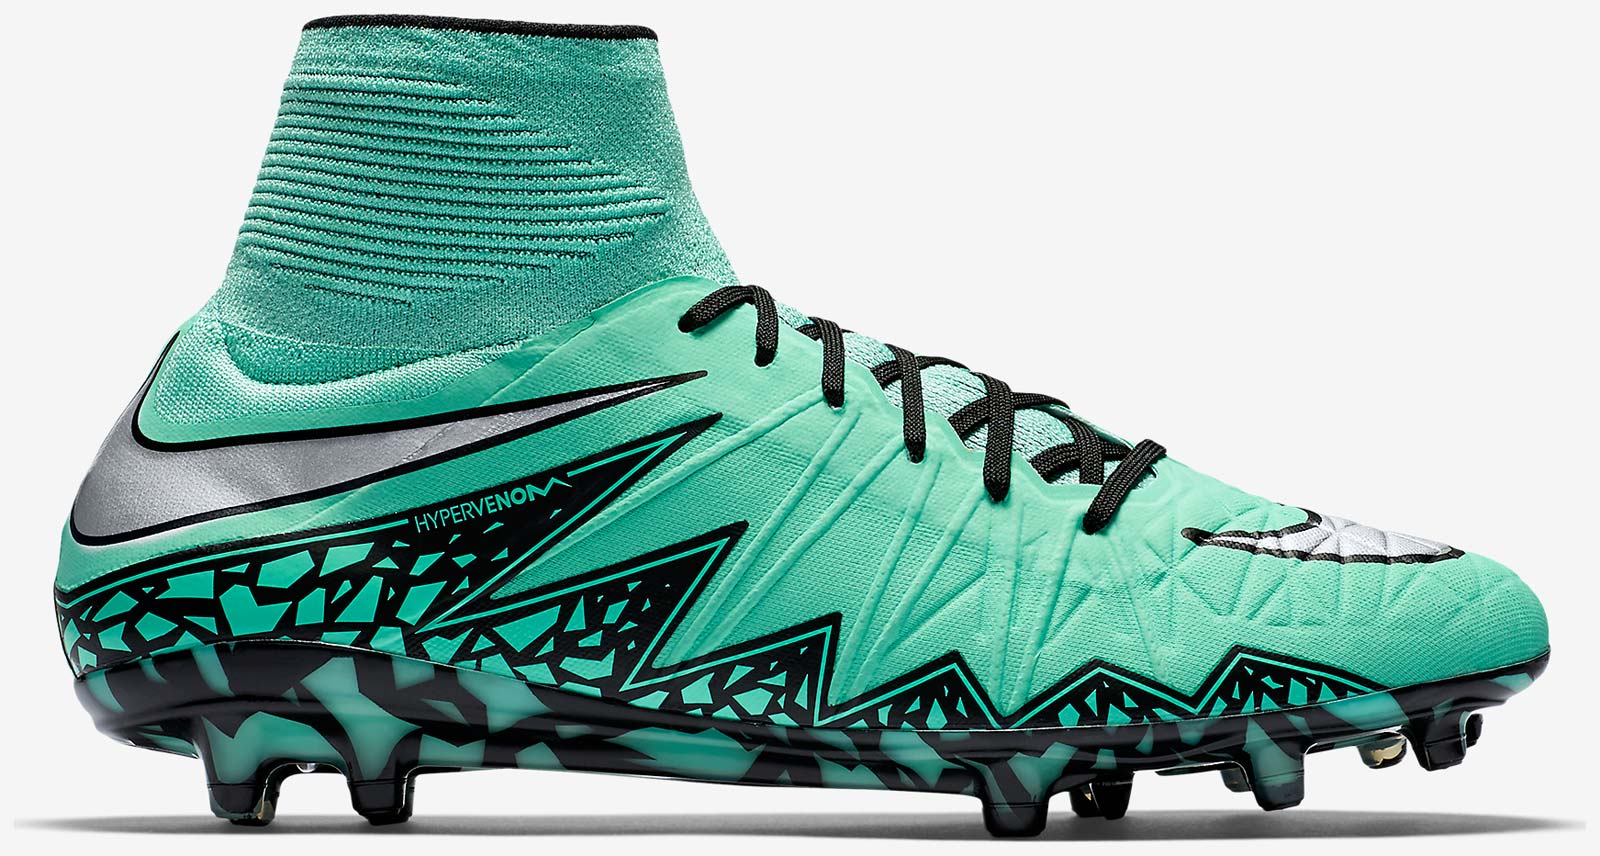 Nike Hypervenom Phantom III DF AG - Electric Green/Black/Hyper Orange/Volt